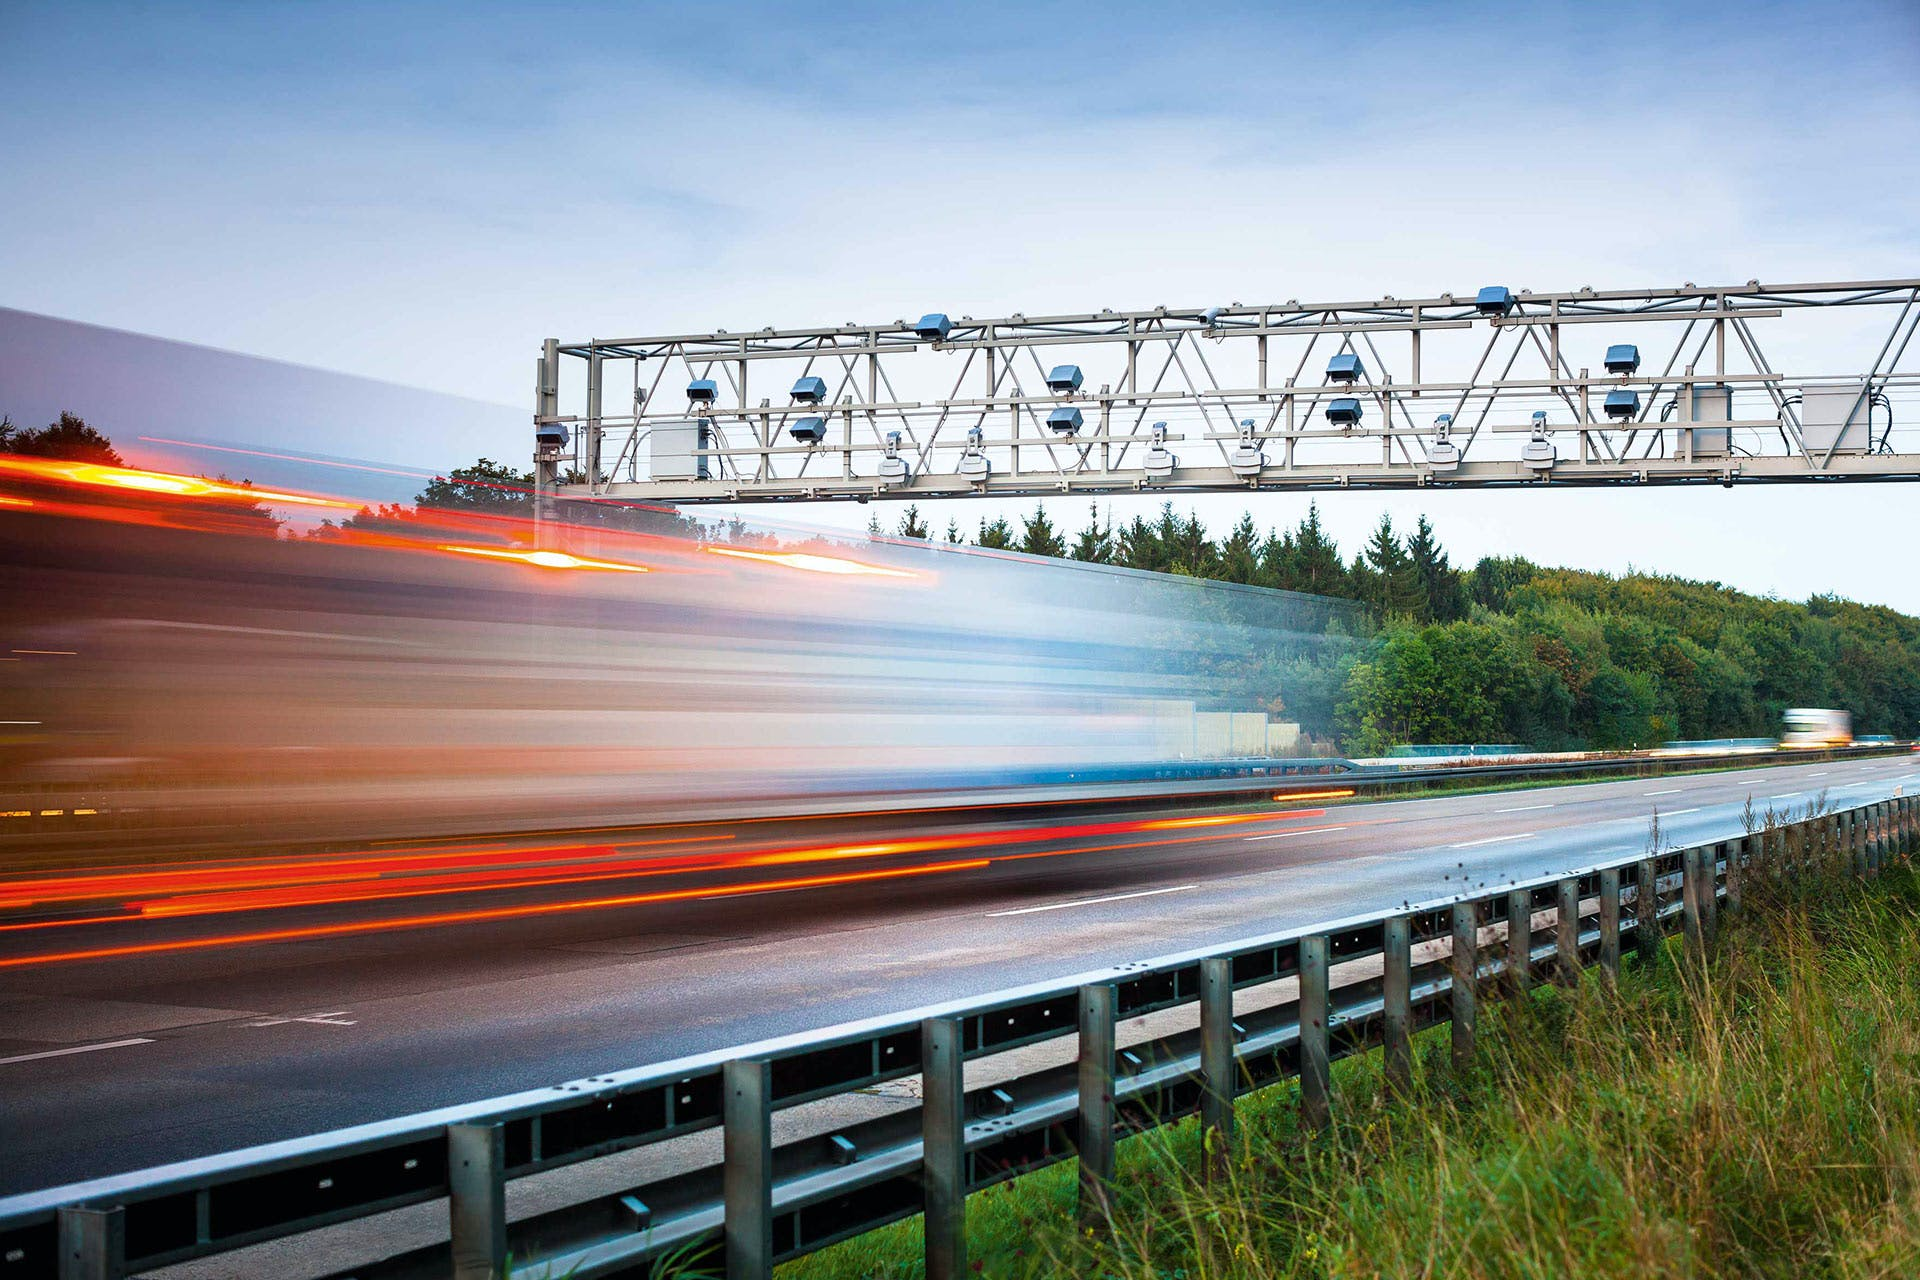 Toll gantry for distance-based road charging and enforcement